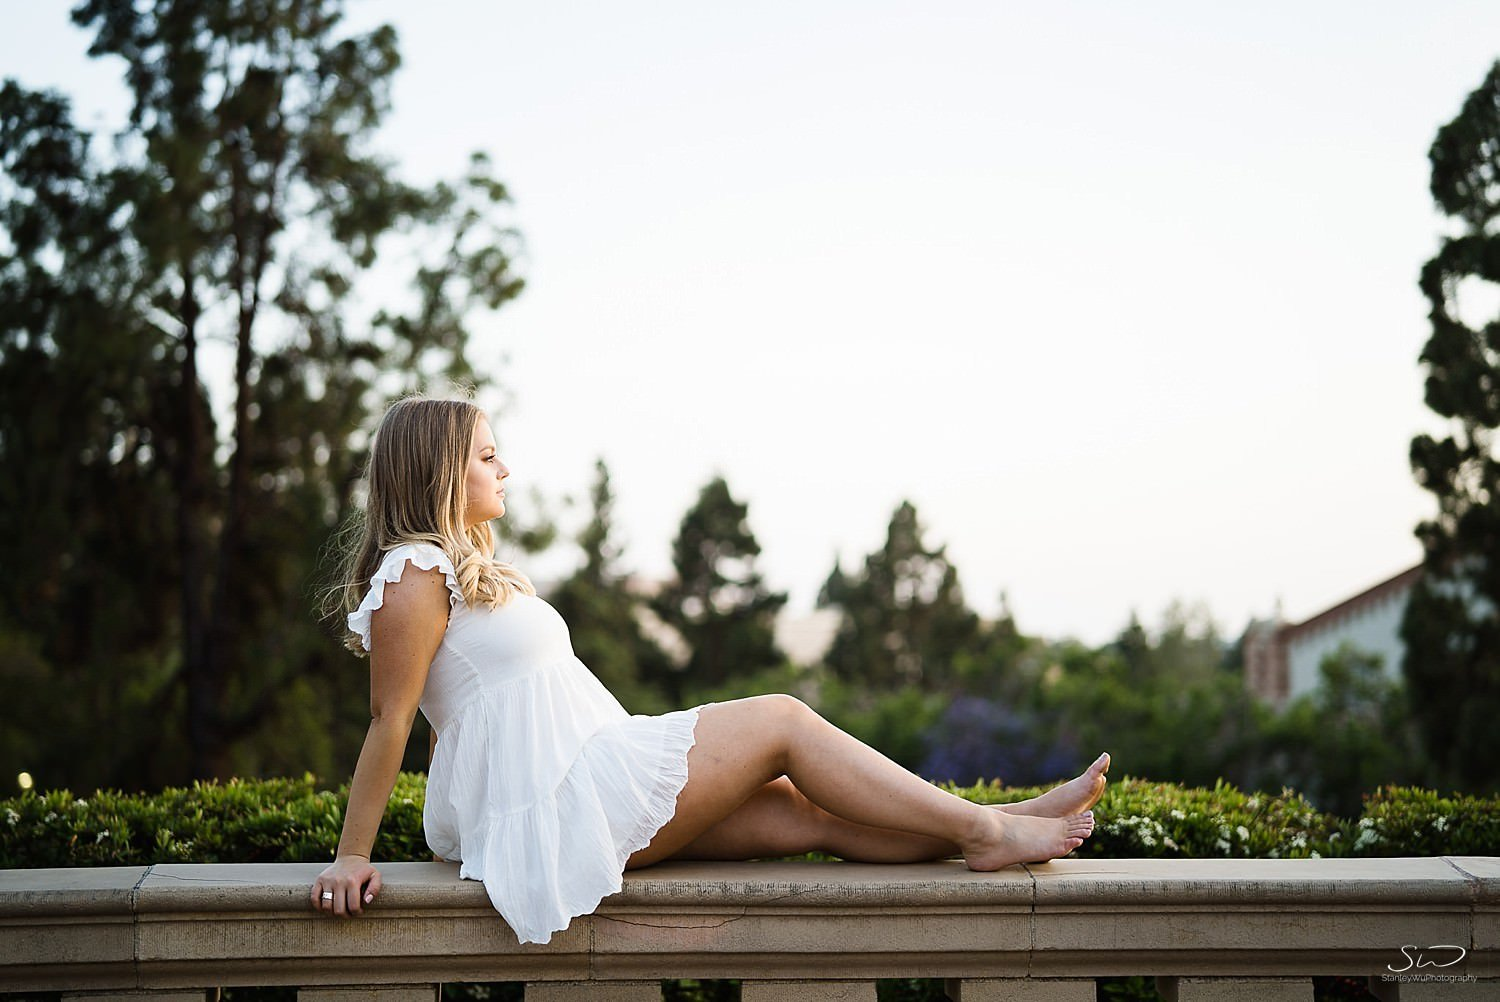 Samantha – UCLA Graduation Portraits 78